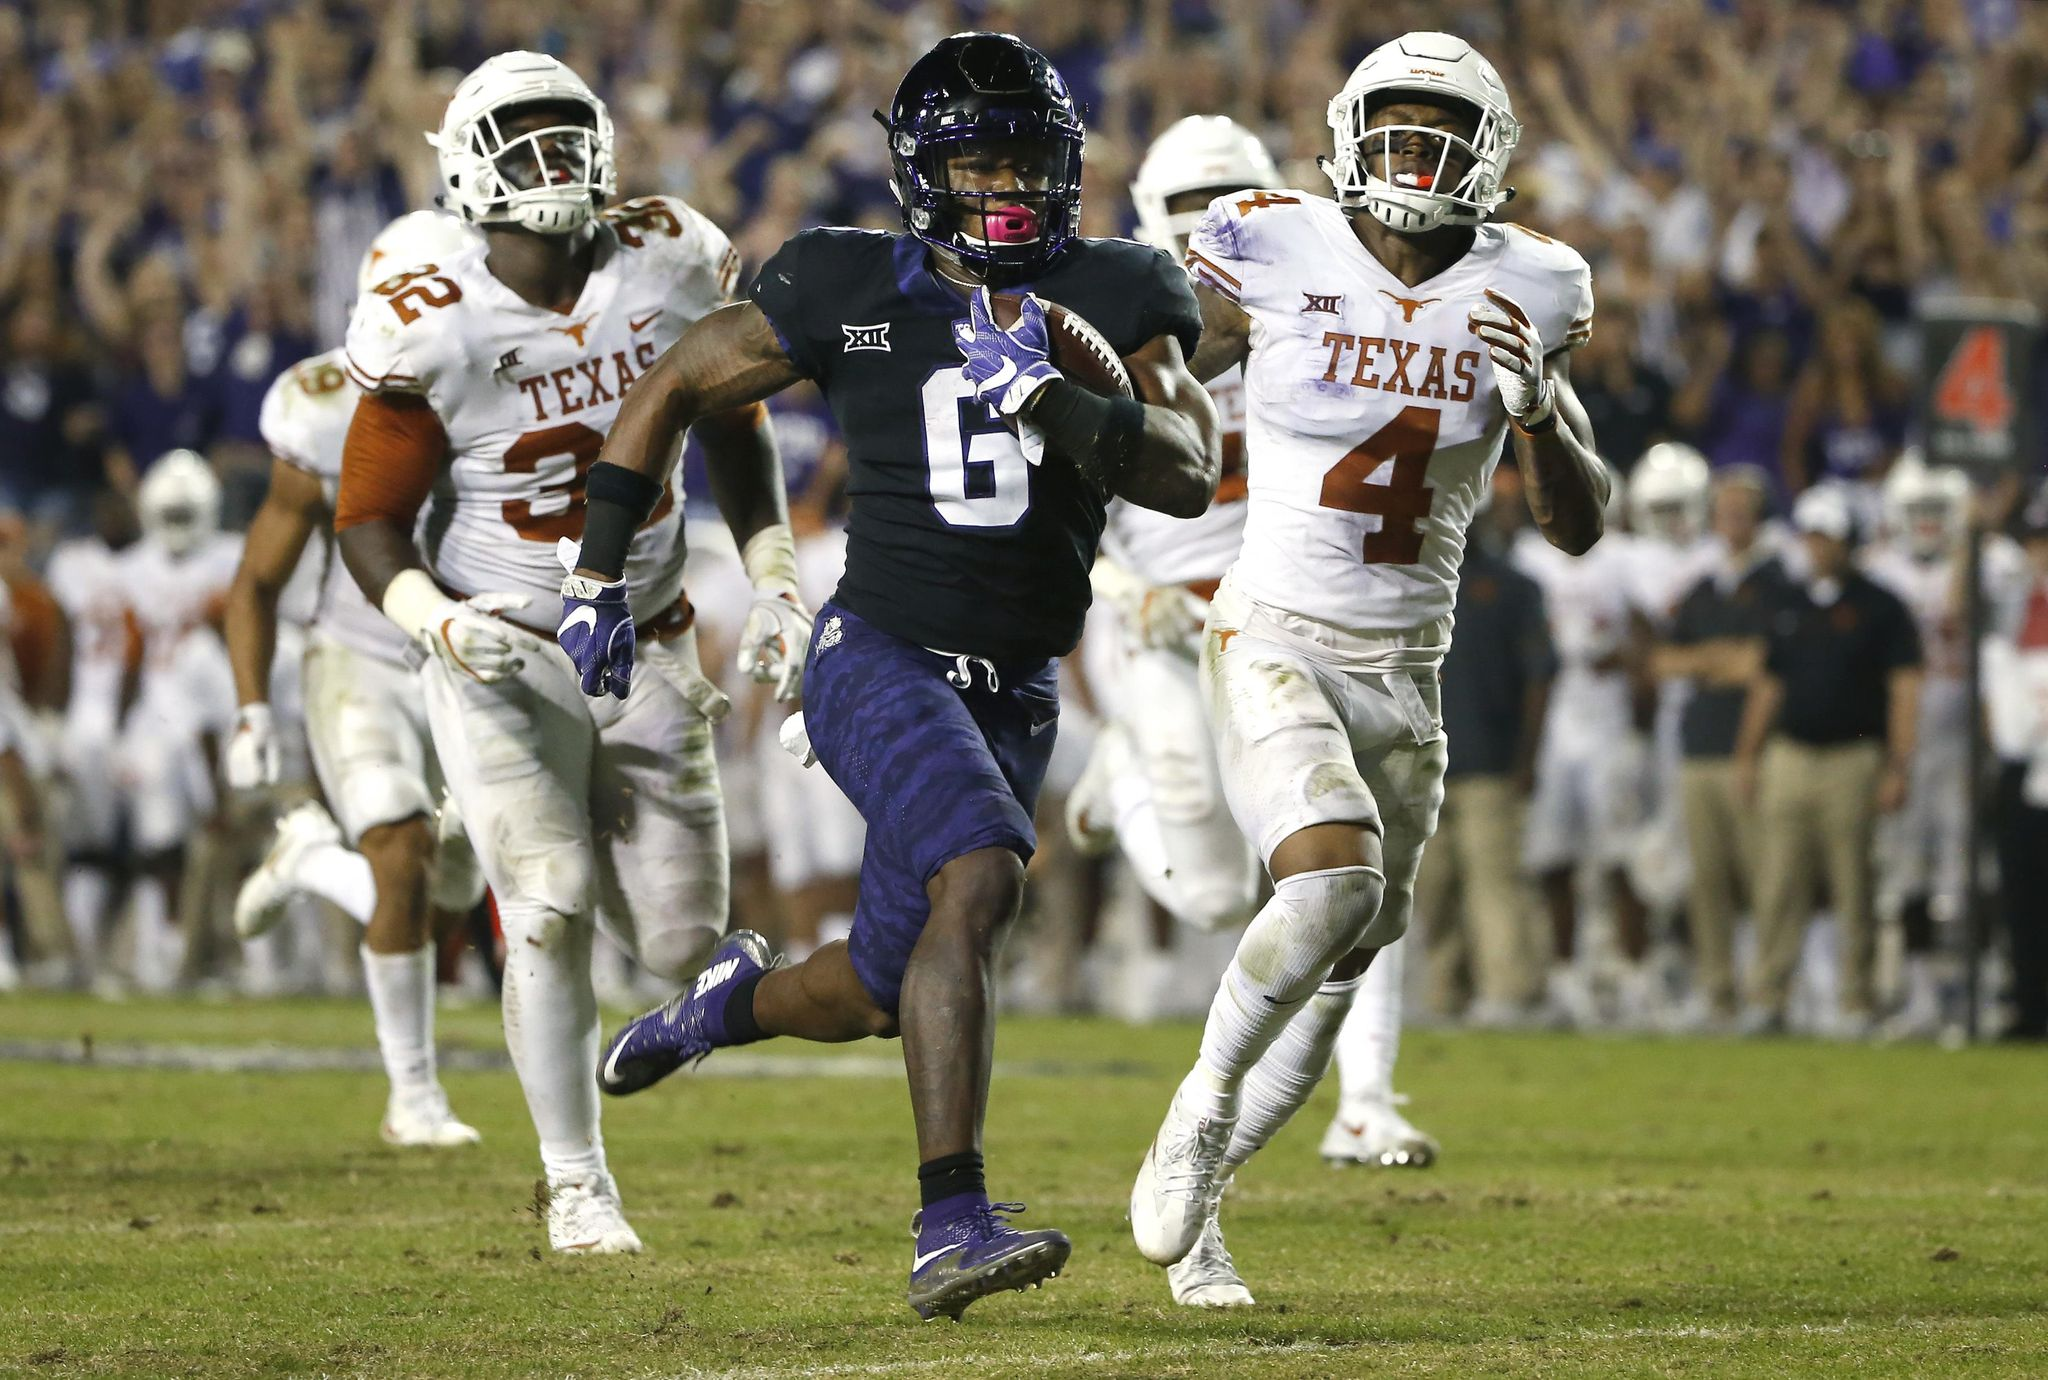 Texas looking to end run of TCU domination in Big 12 rivalry - Washington Times